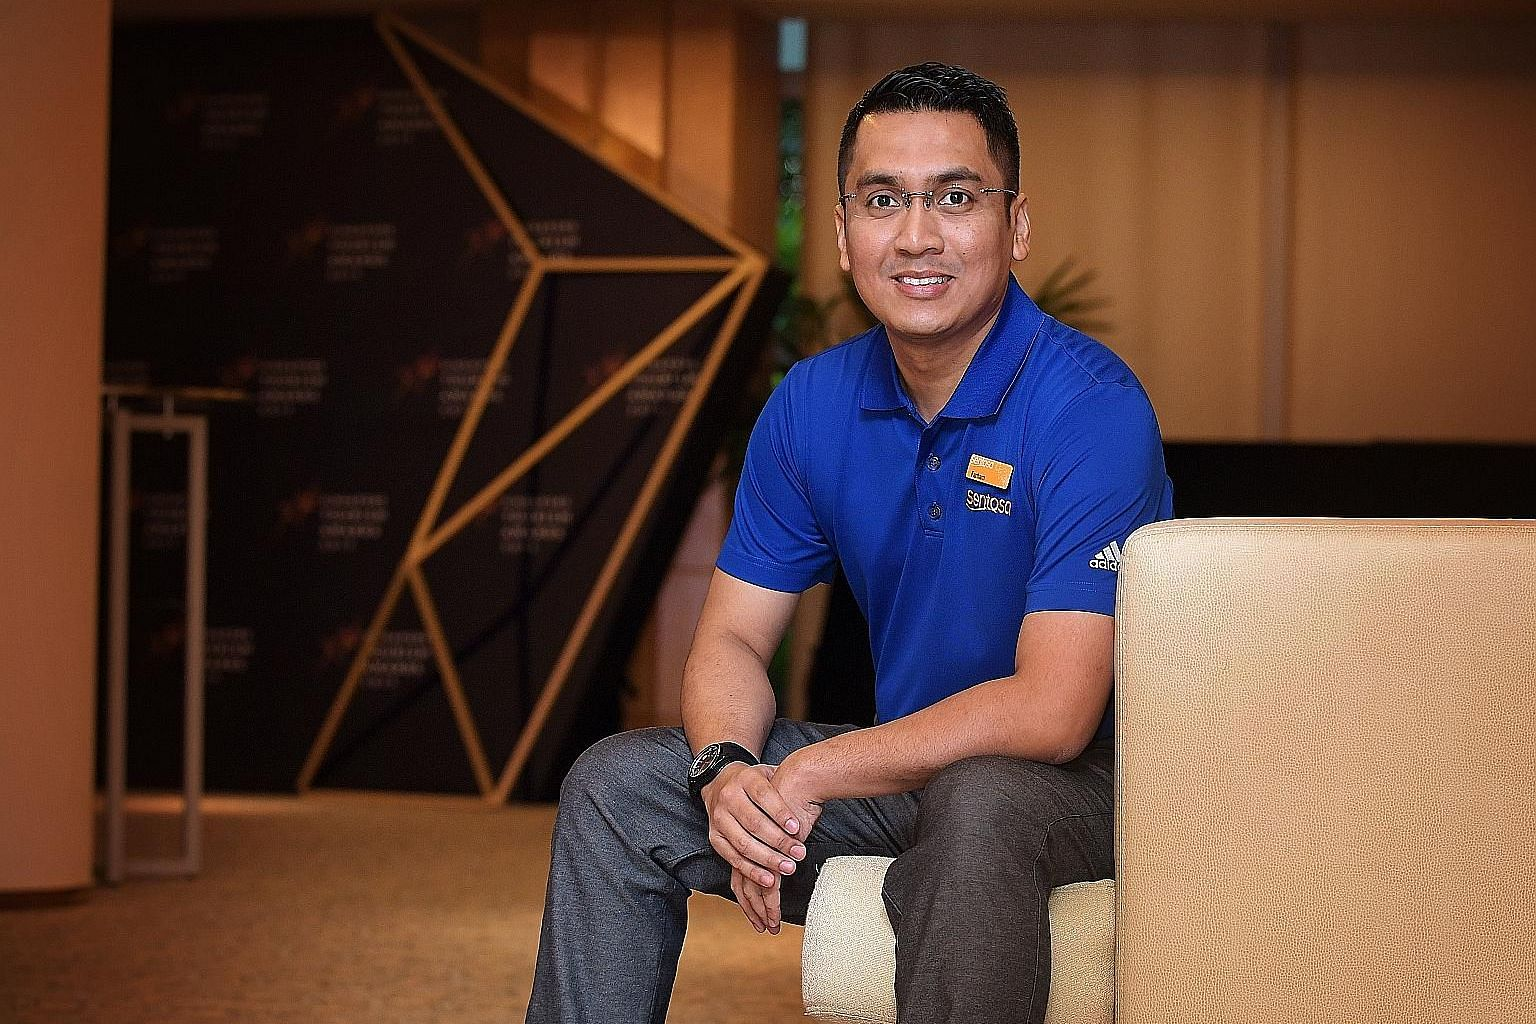 Mr Mohamed Farham Mohamed Noh has been in the customer service industry for 17 years and now works at Sentosa Leisure Management as a service ambassador and transport executive. He won the Customer Service Excellence for Attractions Award at the Sing